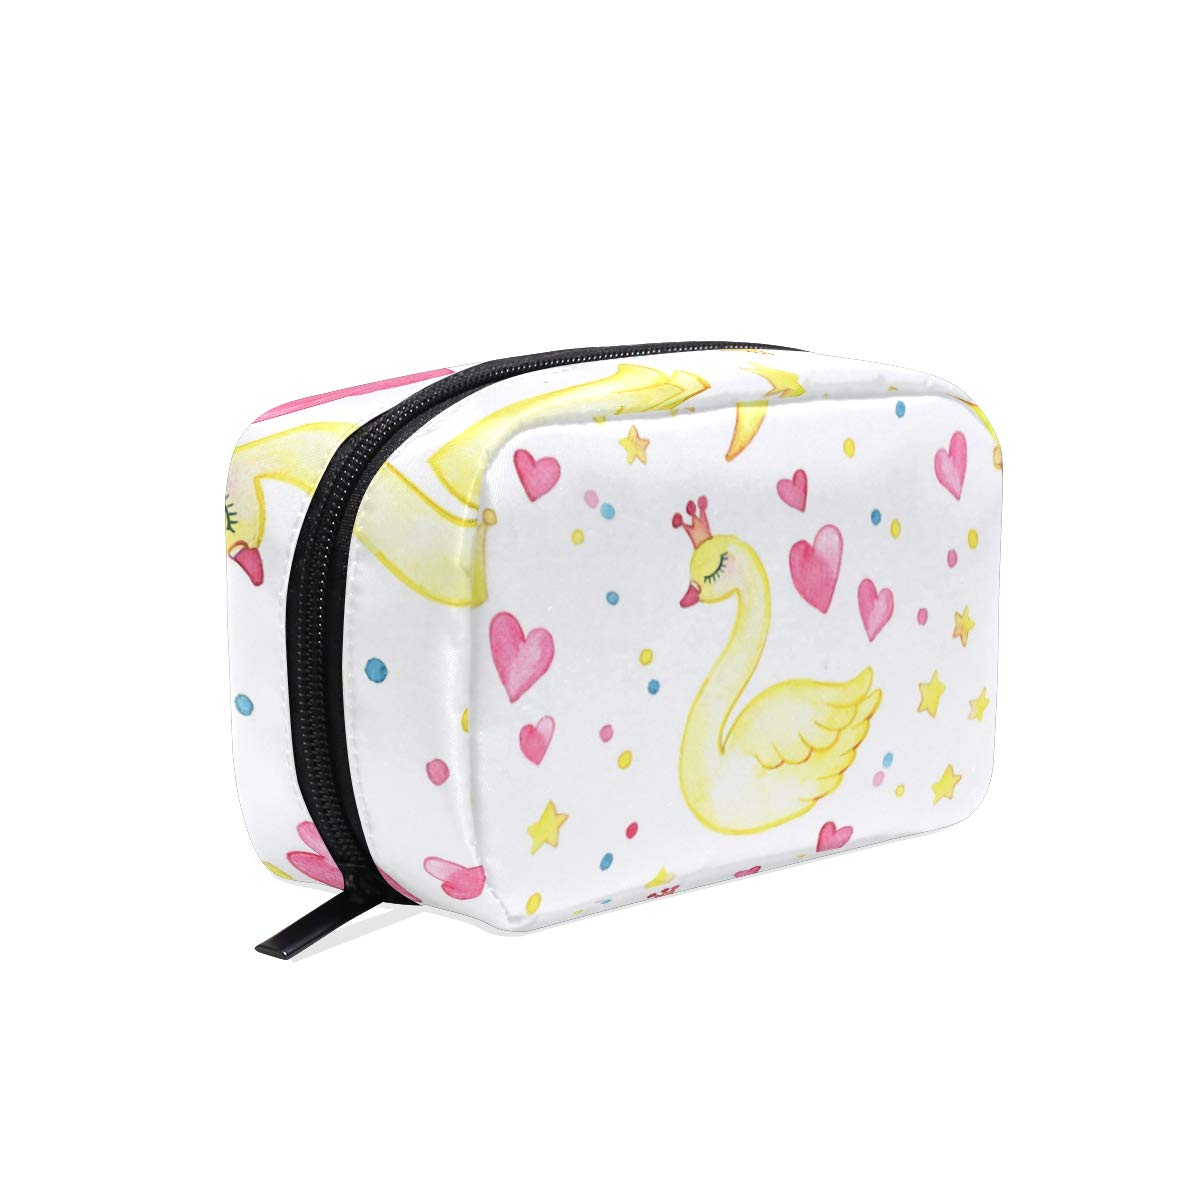 swans-hearts-travel-bag-for-cosmetics